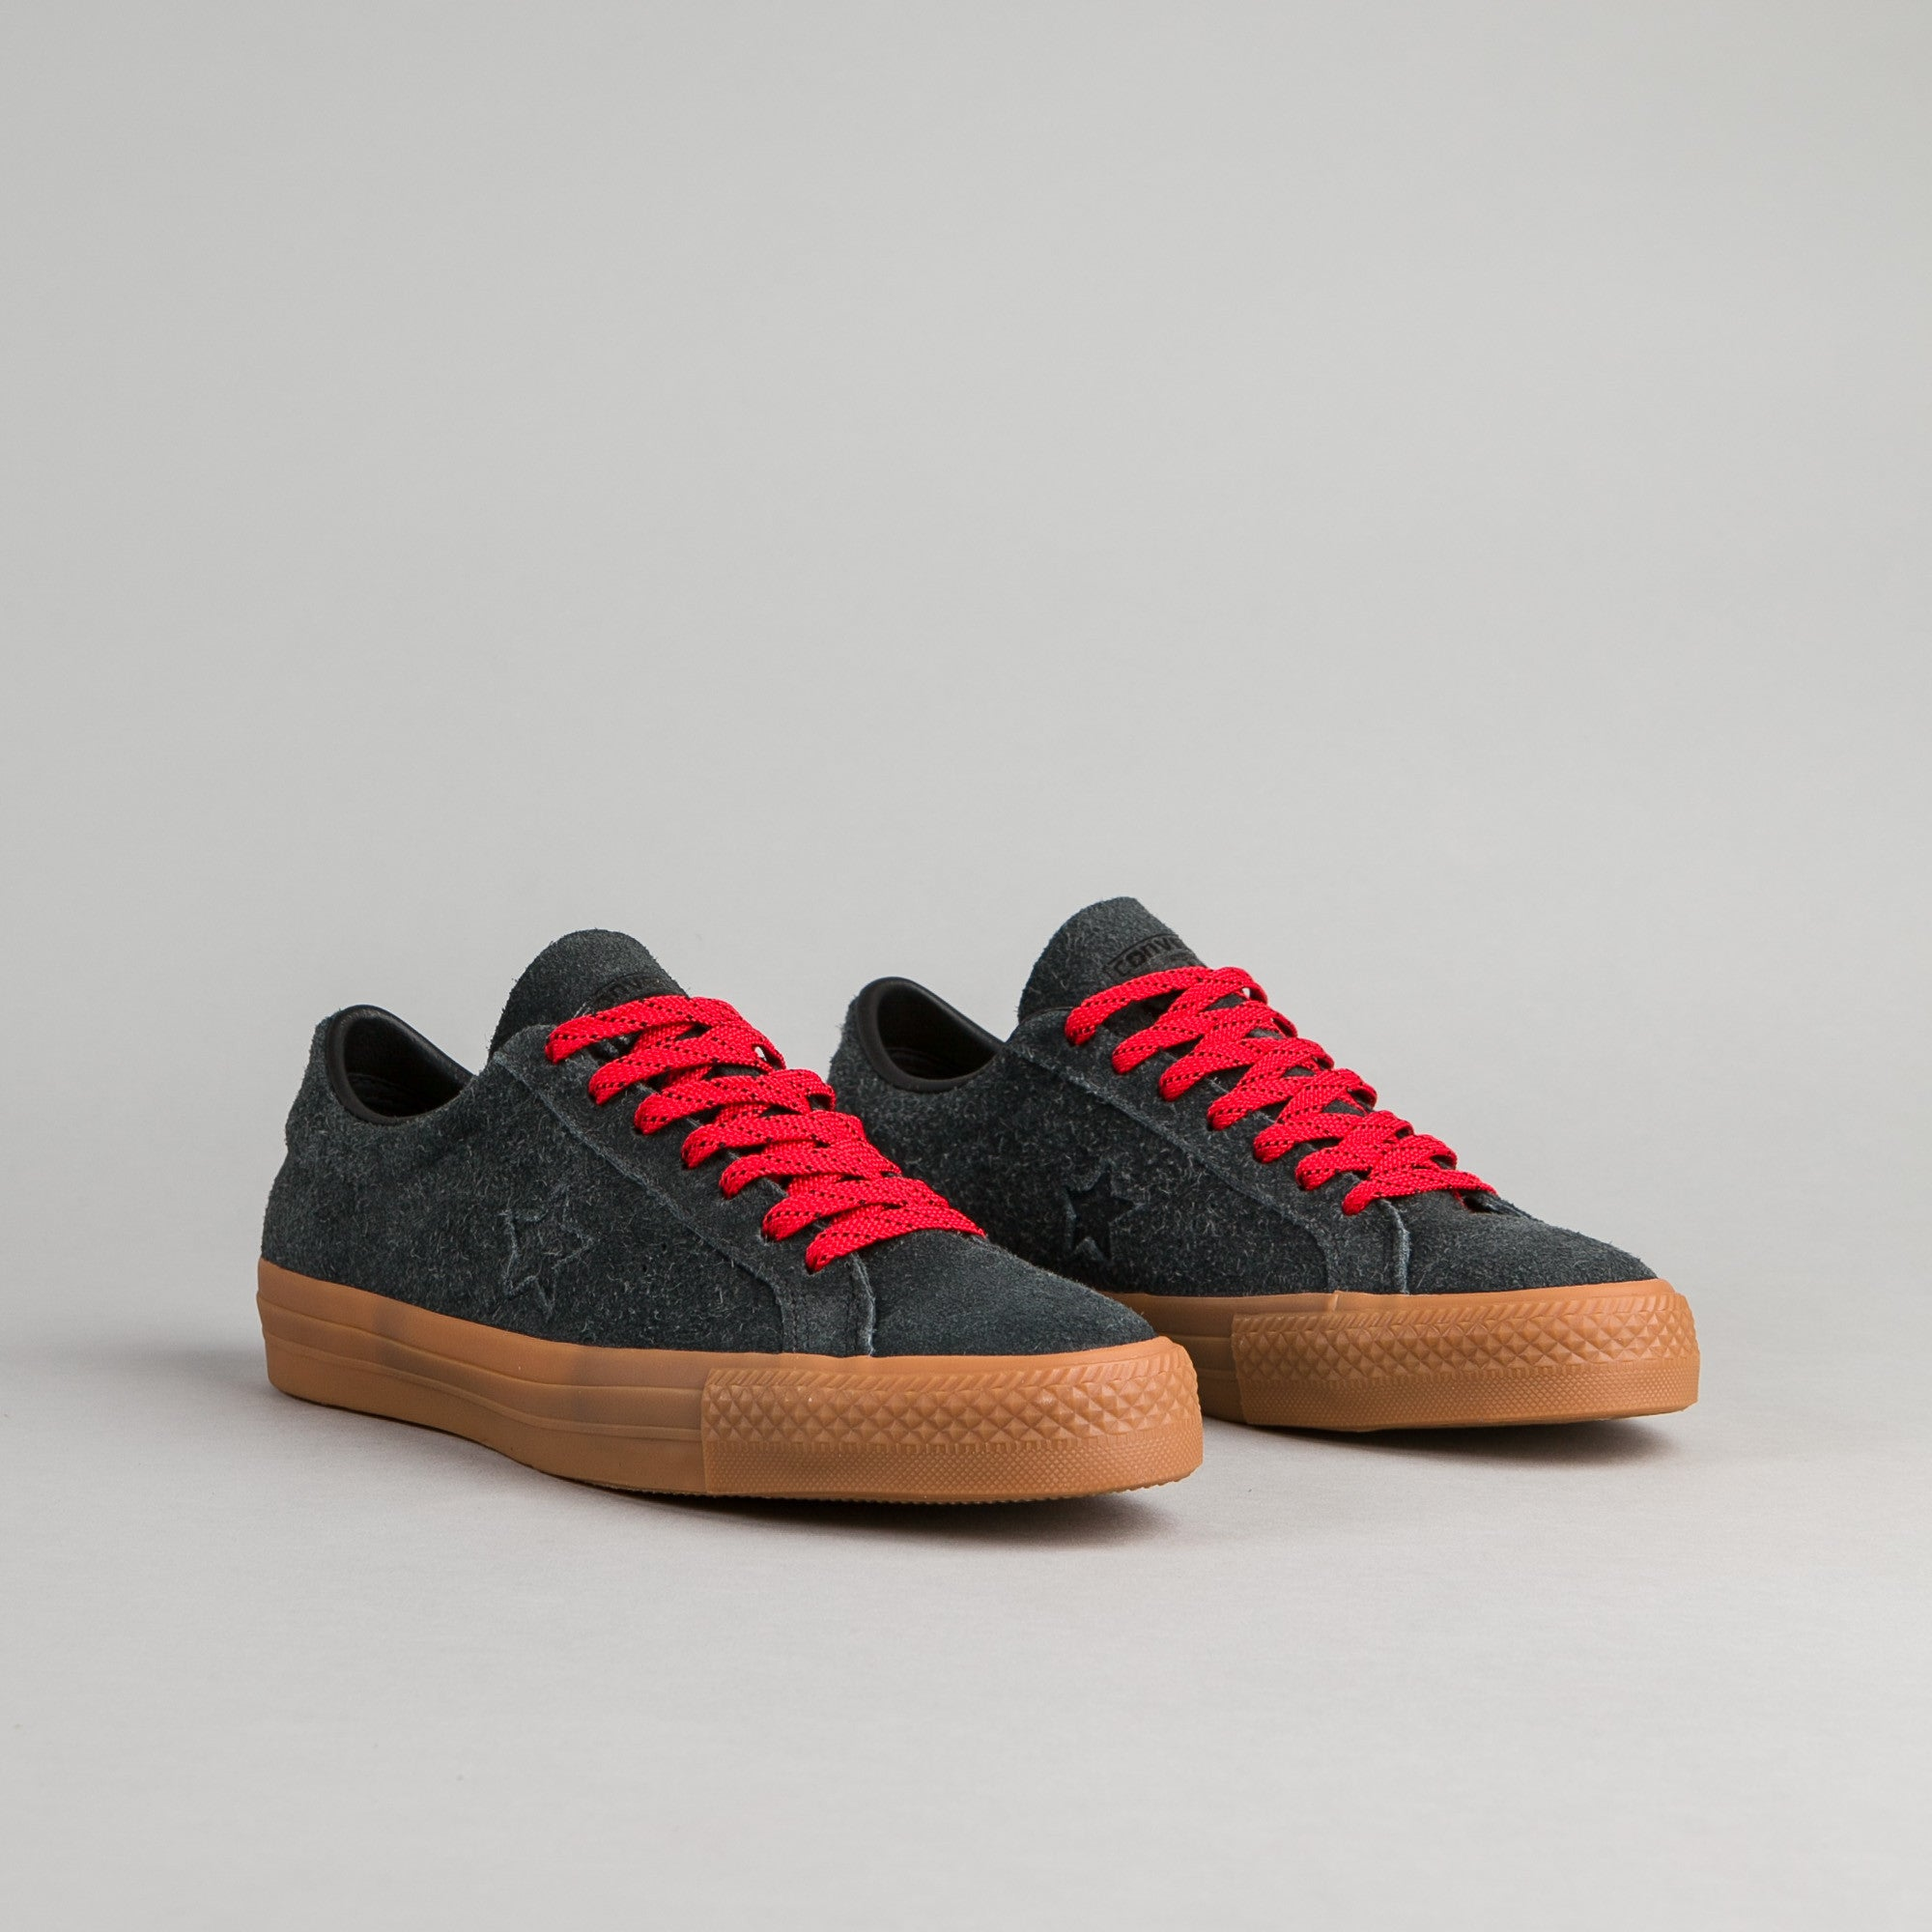 Ox Star Converse Pro Flatspot Black Suede Shoes One Casino Gum qSqI4wv7